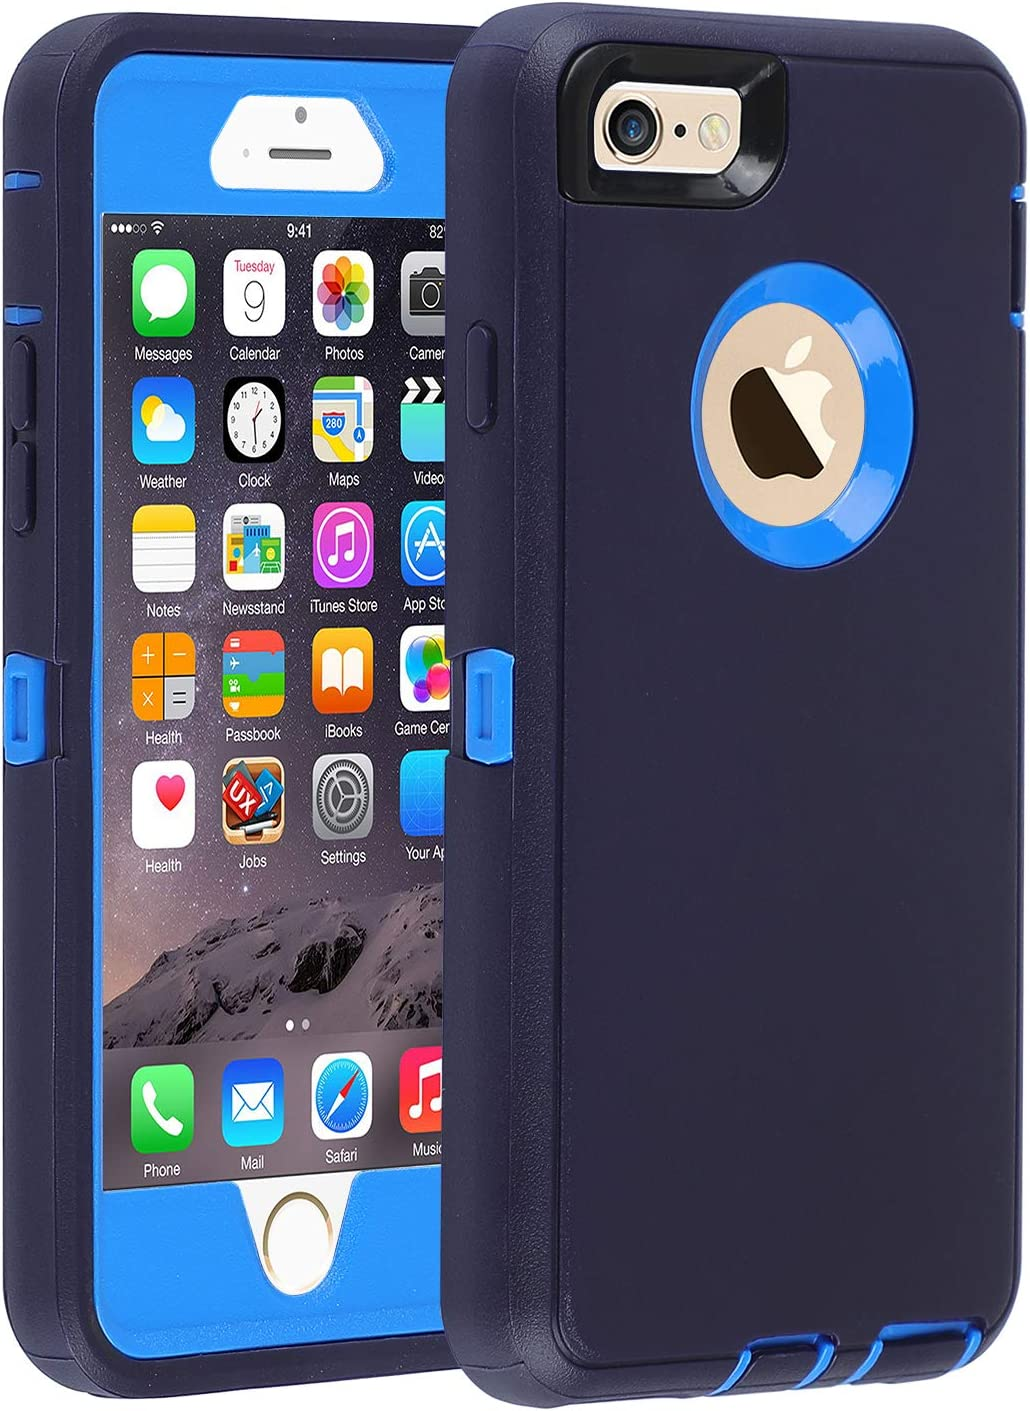 Co-Goldguard Case for iPhone 6/6s,Heavy Duty 3 in 1 Built-in Screen Protector Durable Cover Dust-Proof Shockproof Drop-Proof Scratch-Resistant Shell for Apple iPhone 6/6s 4.7 inch,Navy Blue